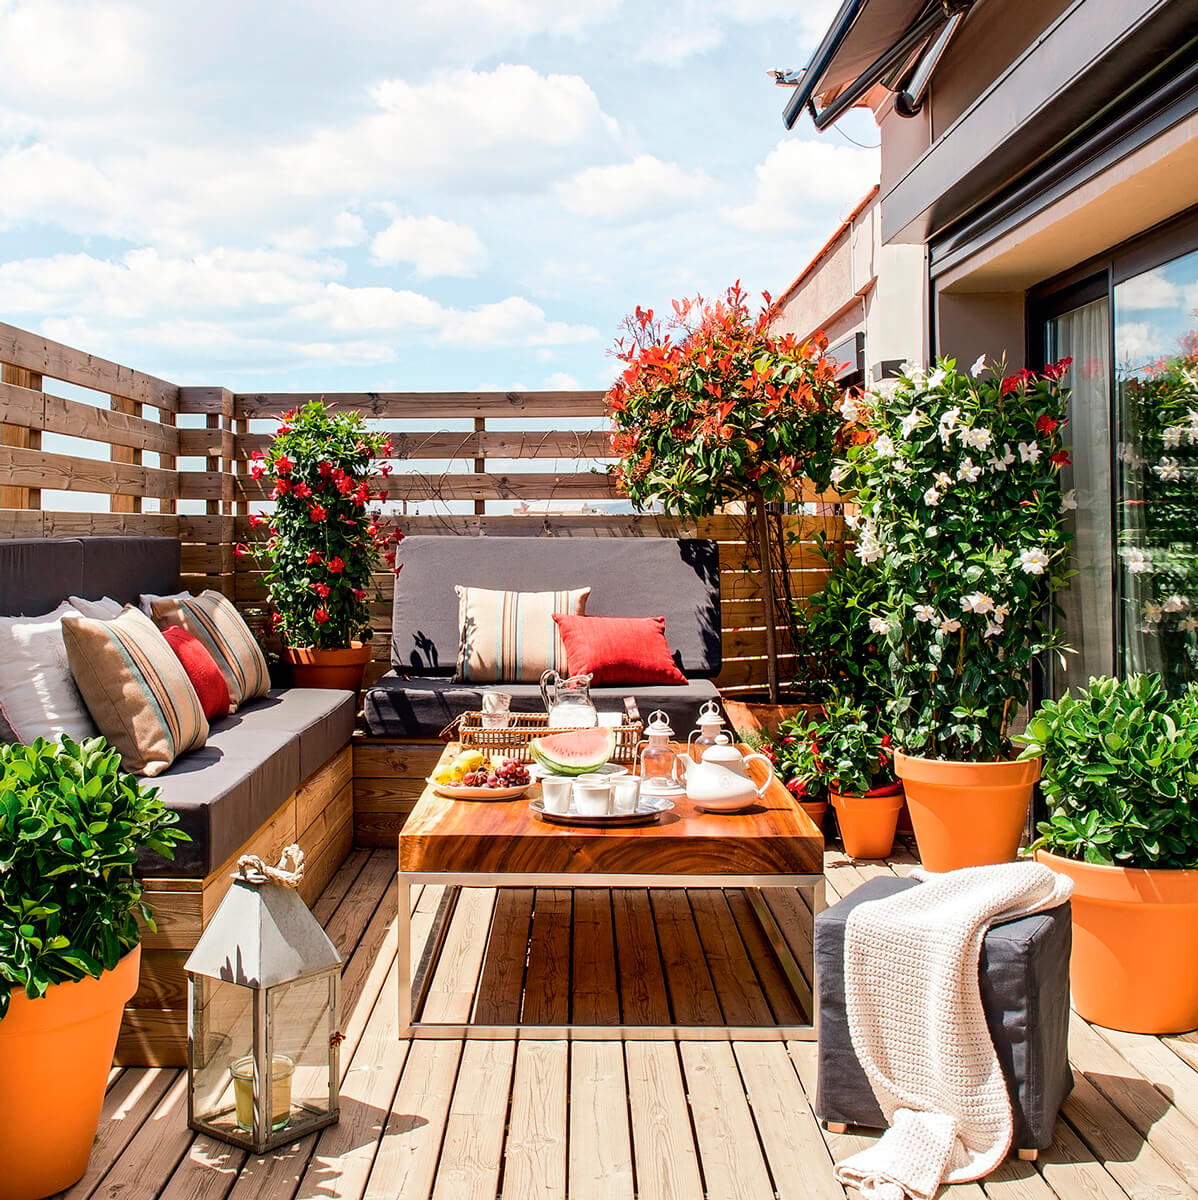 10 ideas para decorar terrazas y balcones handfie diy - Ideas decoracion terraza ...